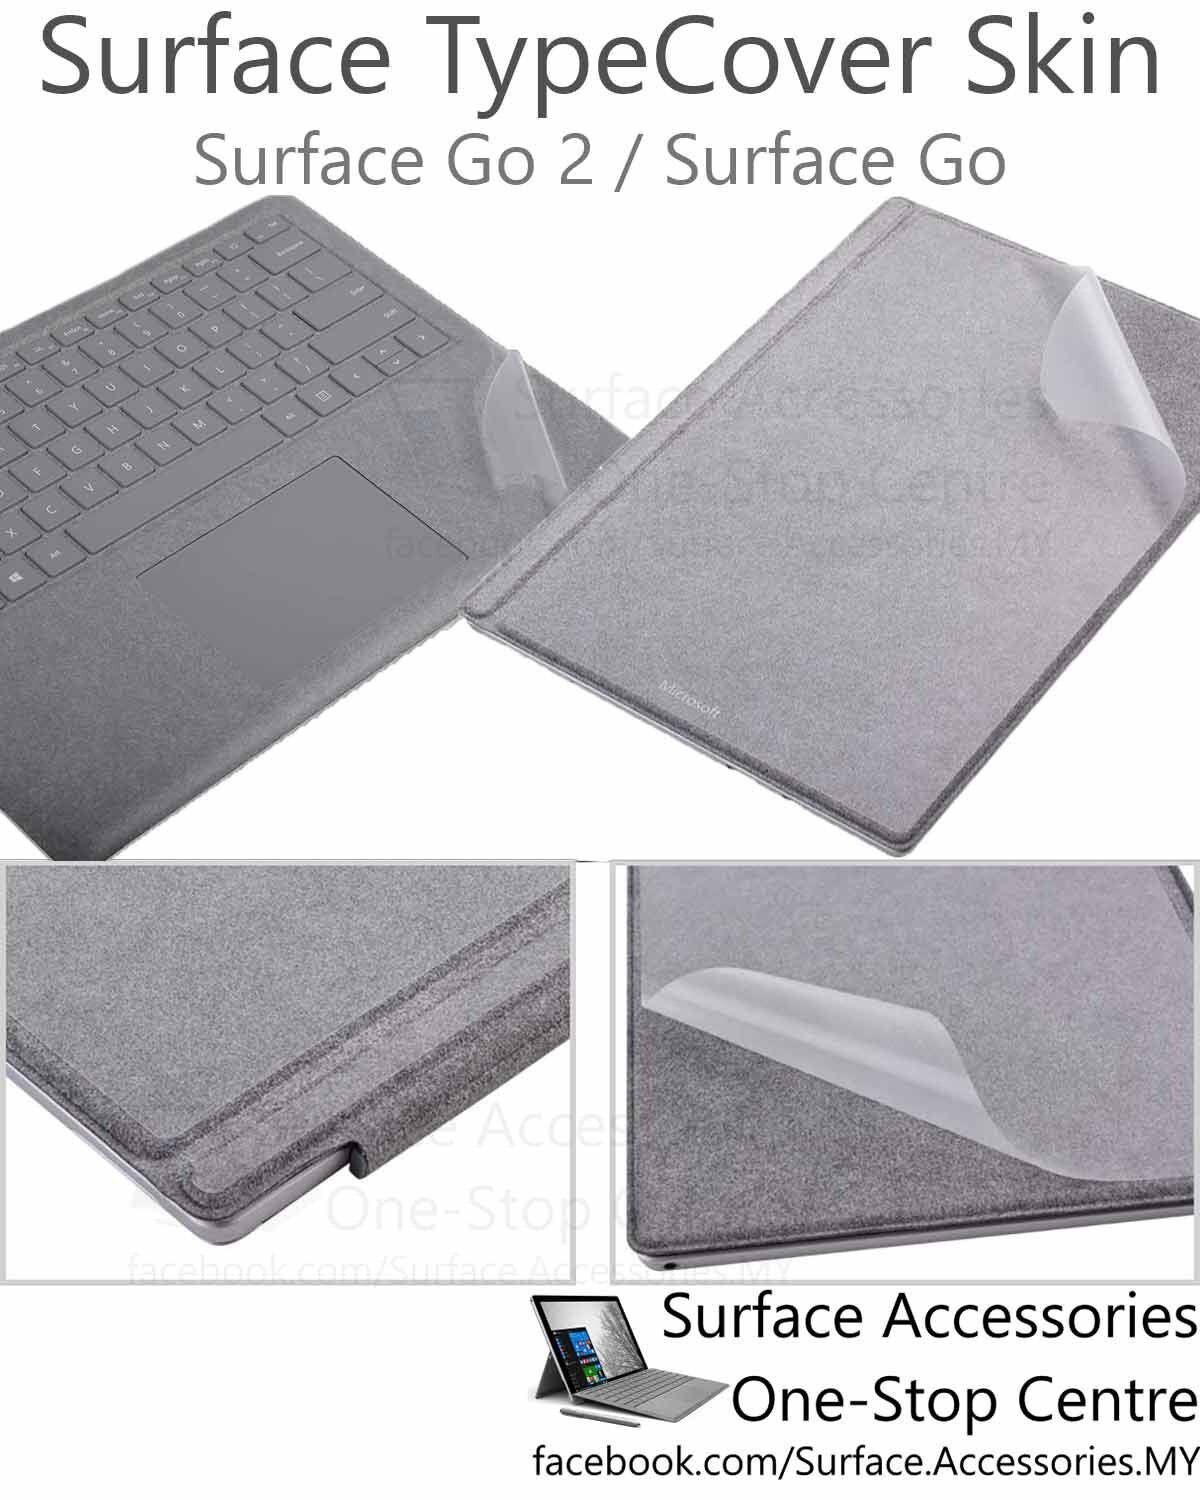 [MALAYSIA]Microsoft Surface Pro 7 Surface Pro 6 Surface Pro 5 Surface Pro 4 Surface Go 2 Surface Pro X Surface Go TypeCover Skin Keyboard Skin Keyboard Protector Palm Rest Protector